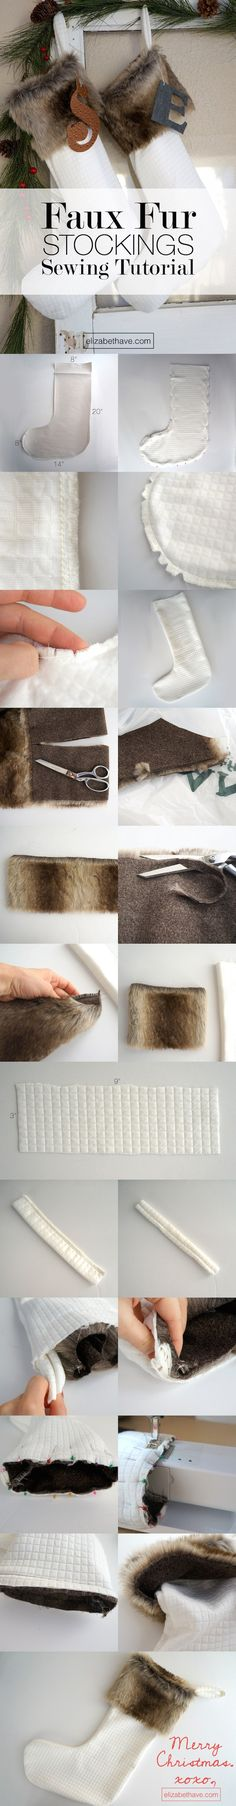 Faux Fur Stockings Tutorial | Follow this sewing tutorial and in just a few simple steps, you will have luxe faux fur stockings just like you see in Restoration Hardware or Pottery Barn, but for a fraction of the price. These Christmas stockings are a quick sew too, taking about 3 hours to make 4 stockings, enough for the whole family! Click on through to see the full tutorial. | www.elizabethave.com